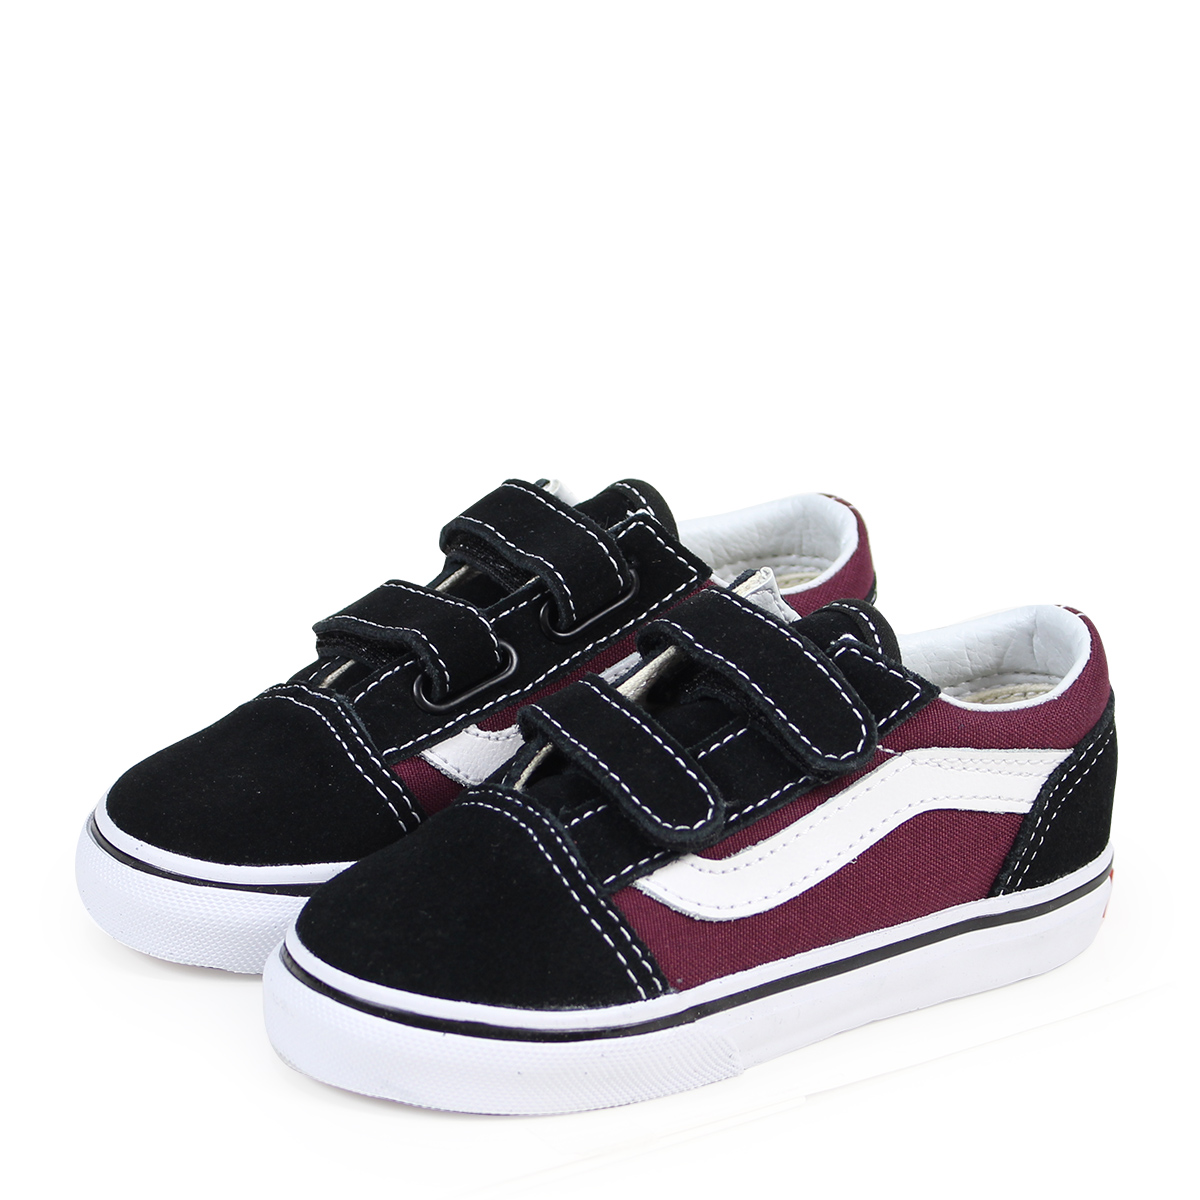 e0c62a8263 VANS OLD SKOOL V old school baby sneakers vans station wagons VN0A344KQ7J  black  3 15 Shinnyu load   183